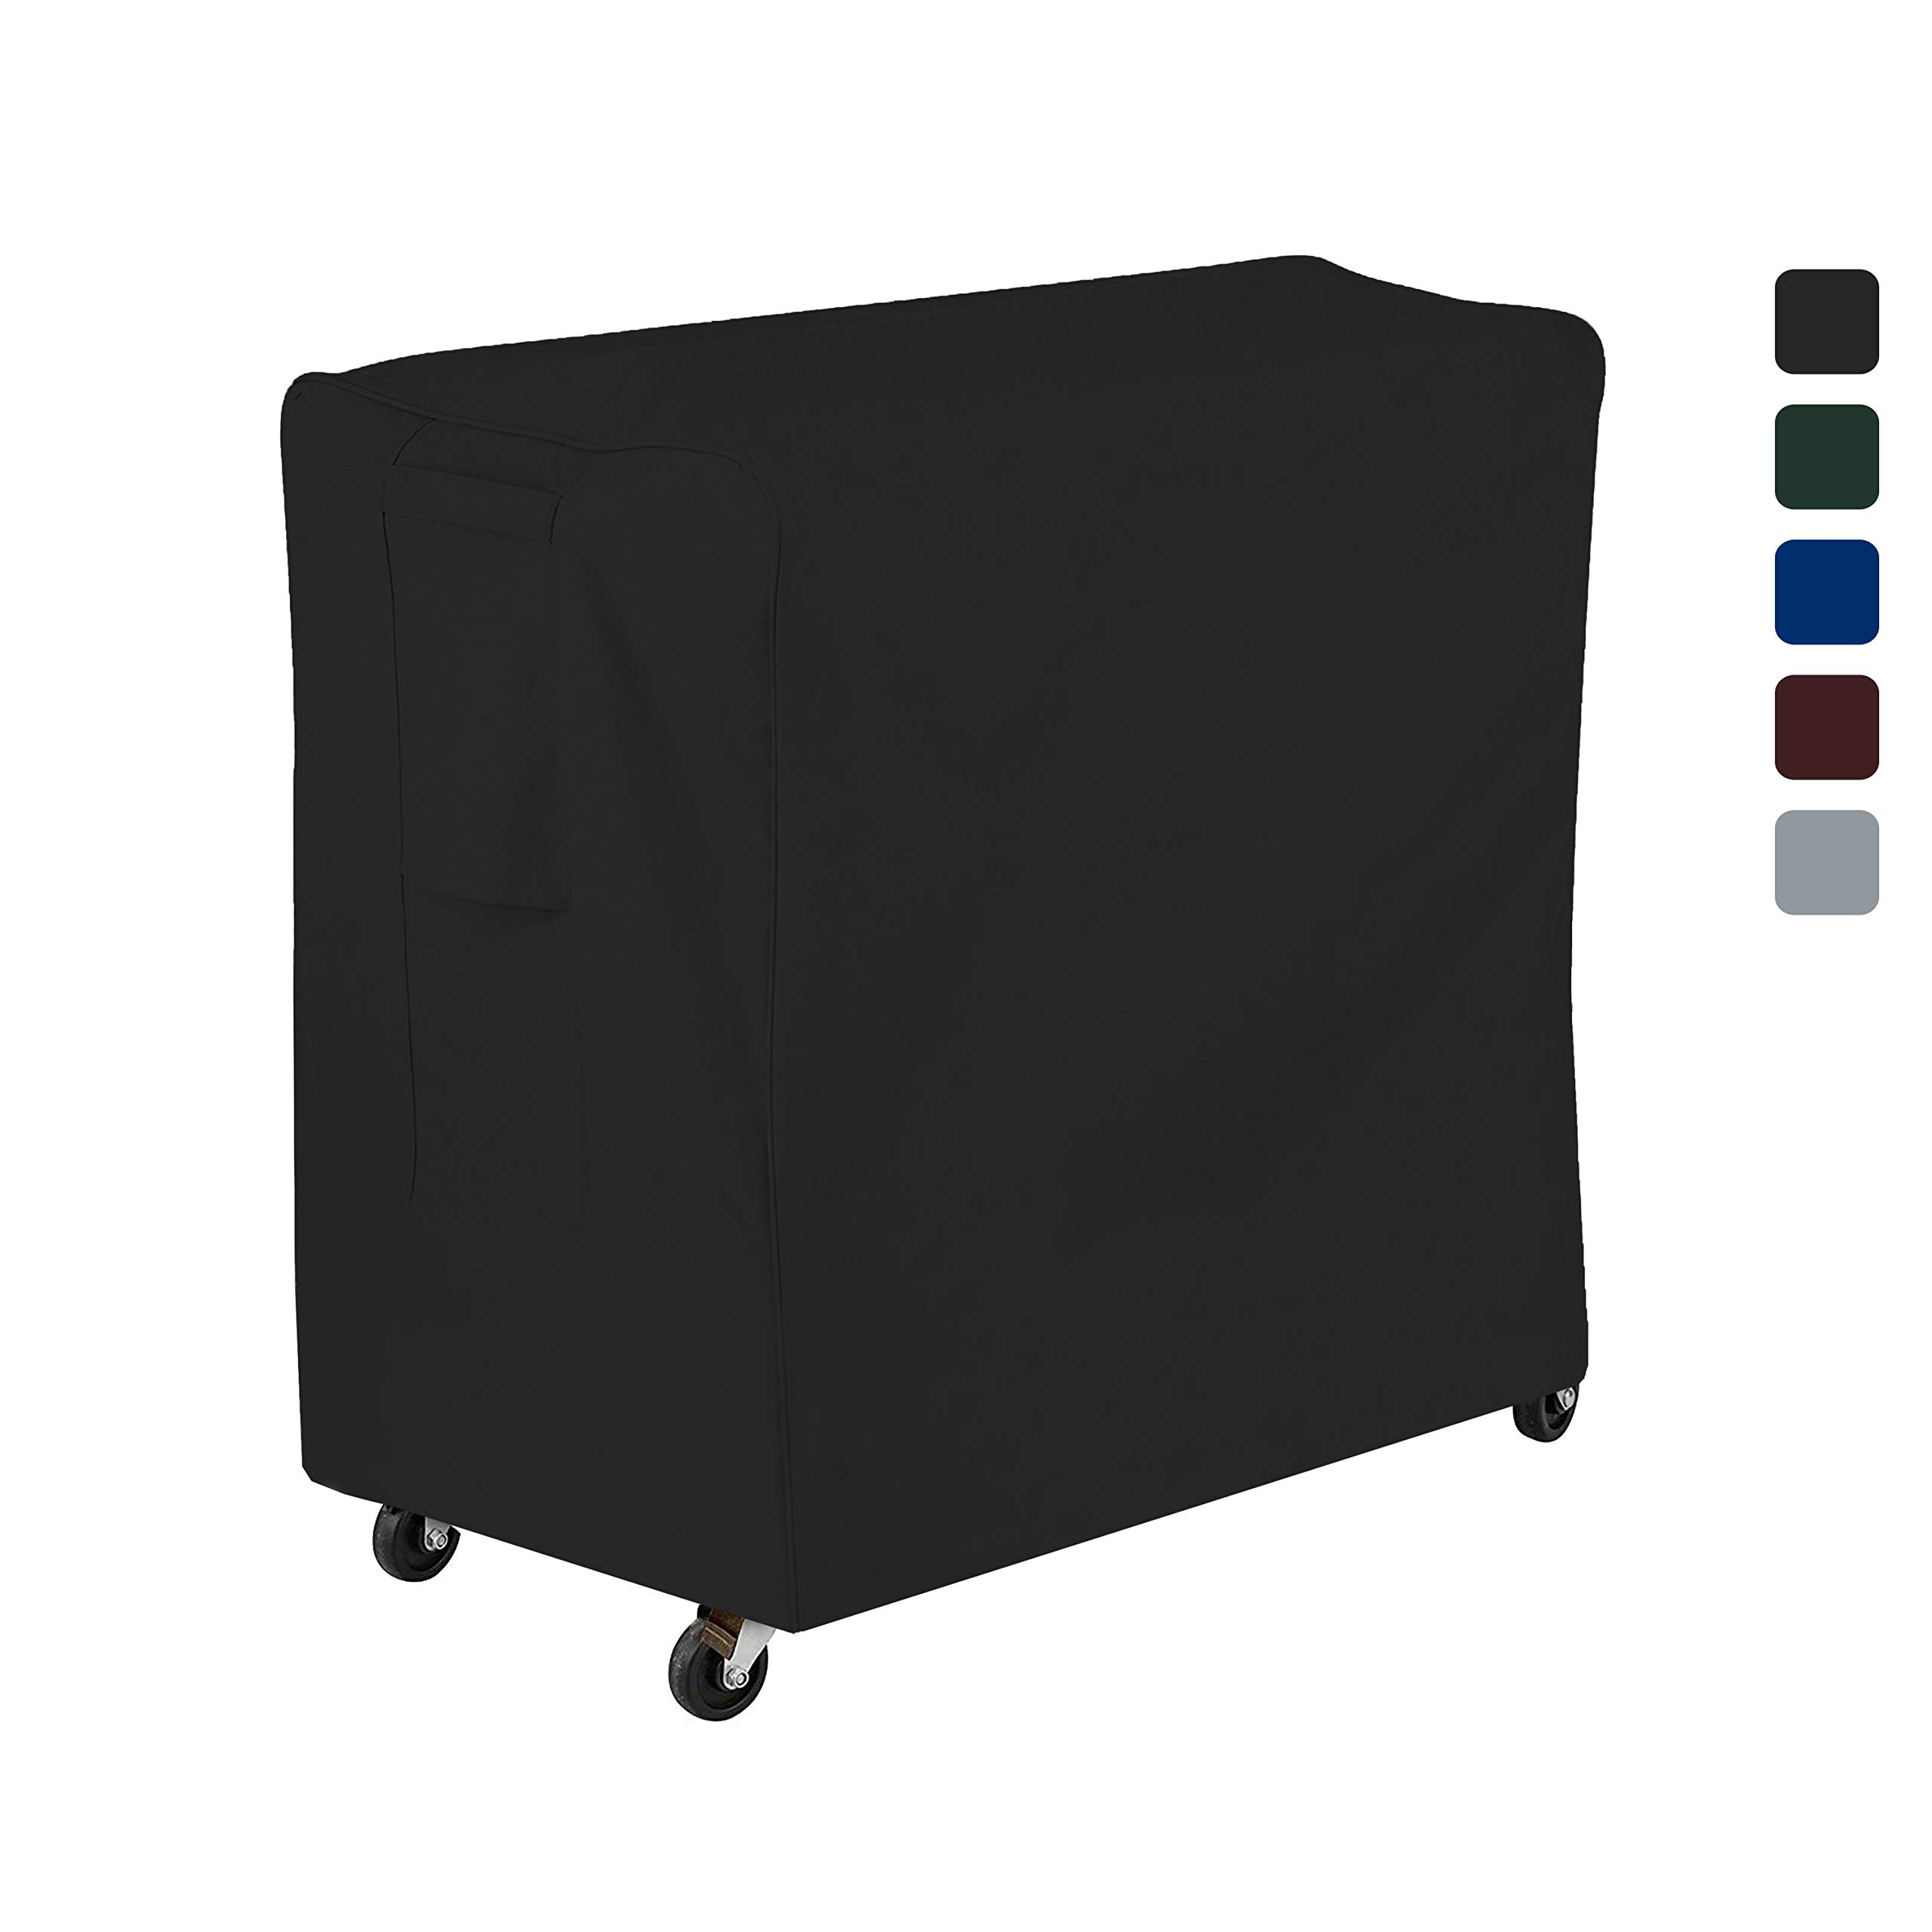 COVERS & ALL Cooler Cover 18 Oz Waterproof - Rolling Cooler Cart Cover 100% UV & Weather Resistant with Air Pocket and Drawstring for Snug Fit (32'' H x 36'' W x 20'' D, Black) by COVERS & ALL